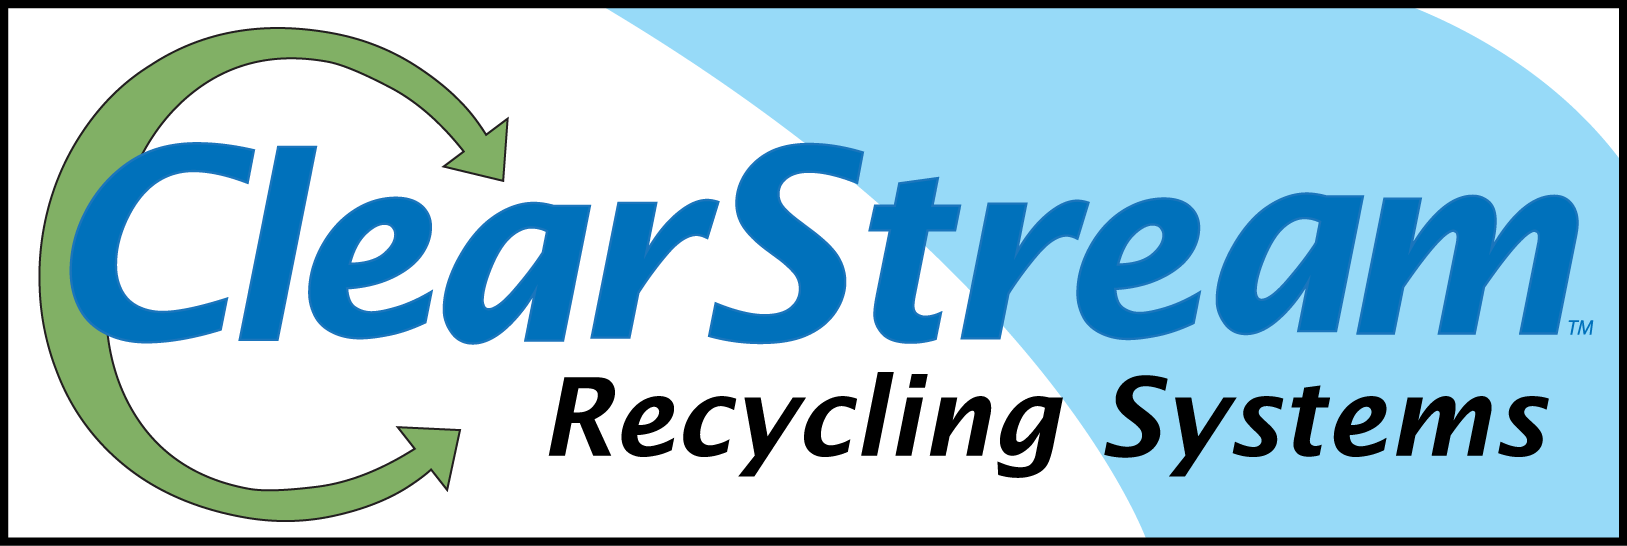 ClearStream Recycling